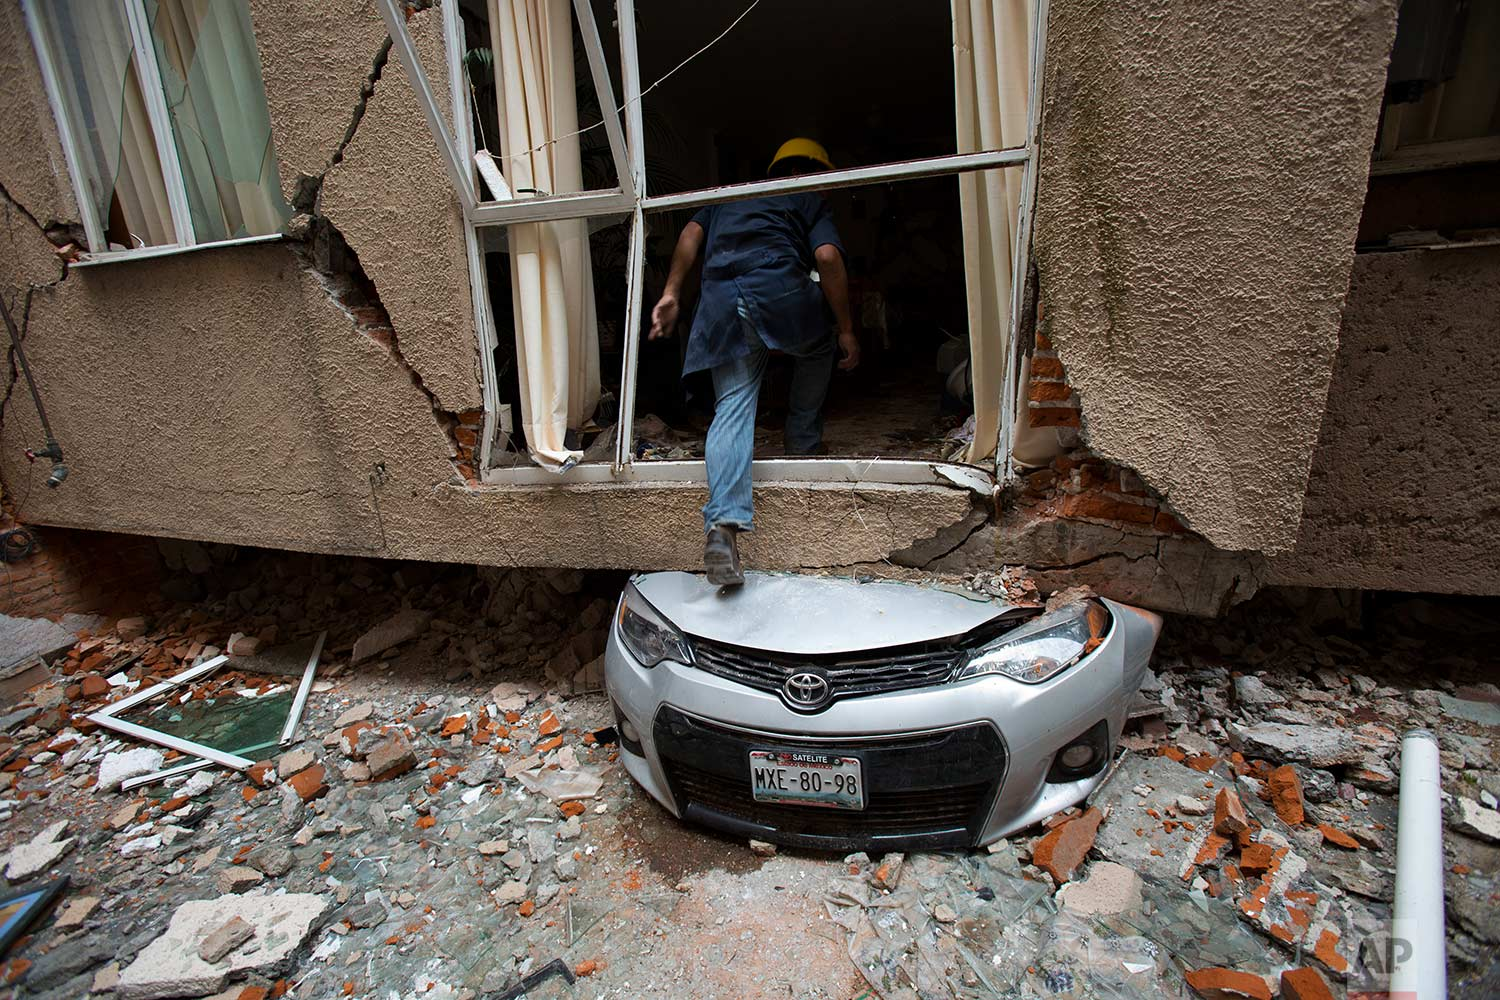 Rodrigo Diaz Mejia climbs over a crushed car into what was a second-story apartment at 517 Tokio street, felled by the earthquake almost one month ago in the Portales Norte neighborhood of Mexico City, Wednesday, Oct. 18, 2017. (AP Photo/Rebecca Blackwell)